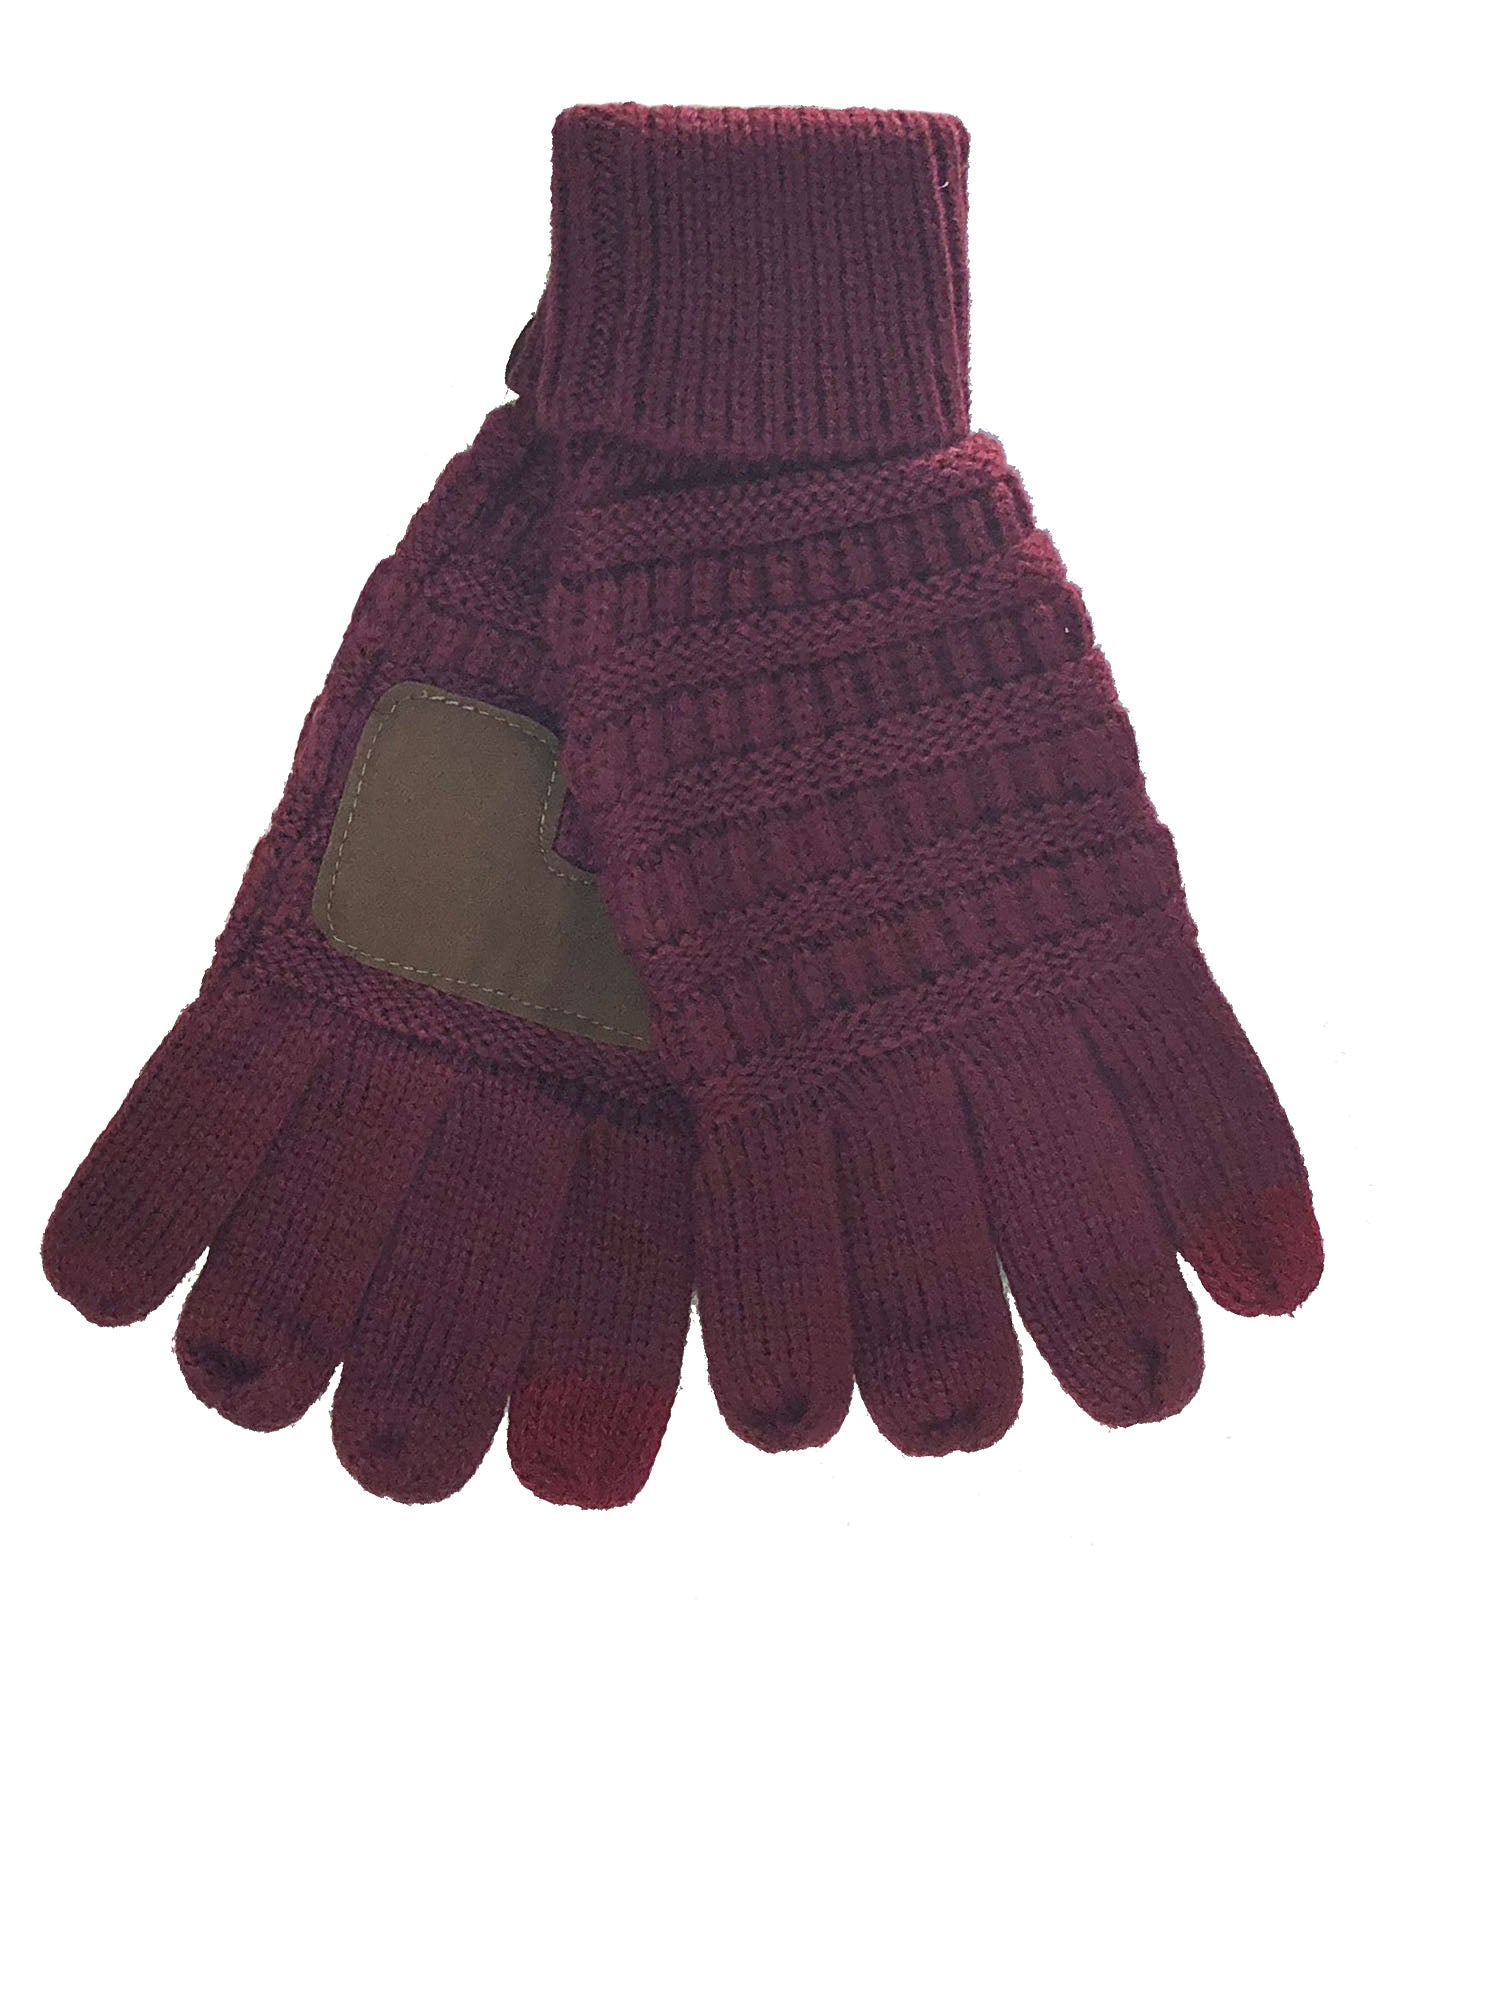 G-20 C.C Maroon Gloves